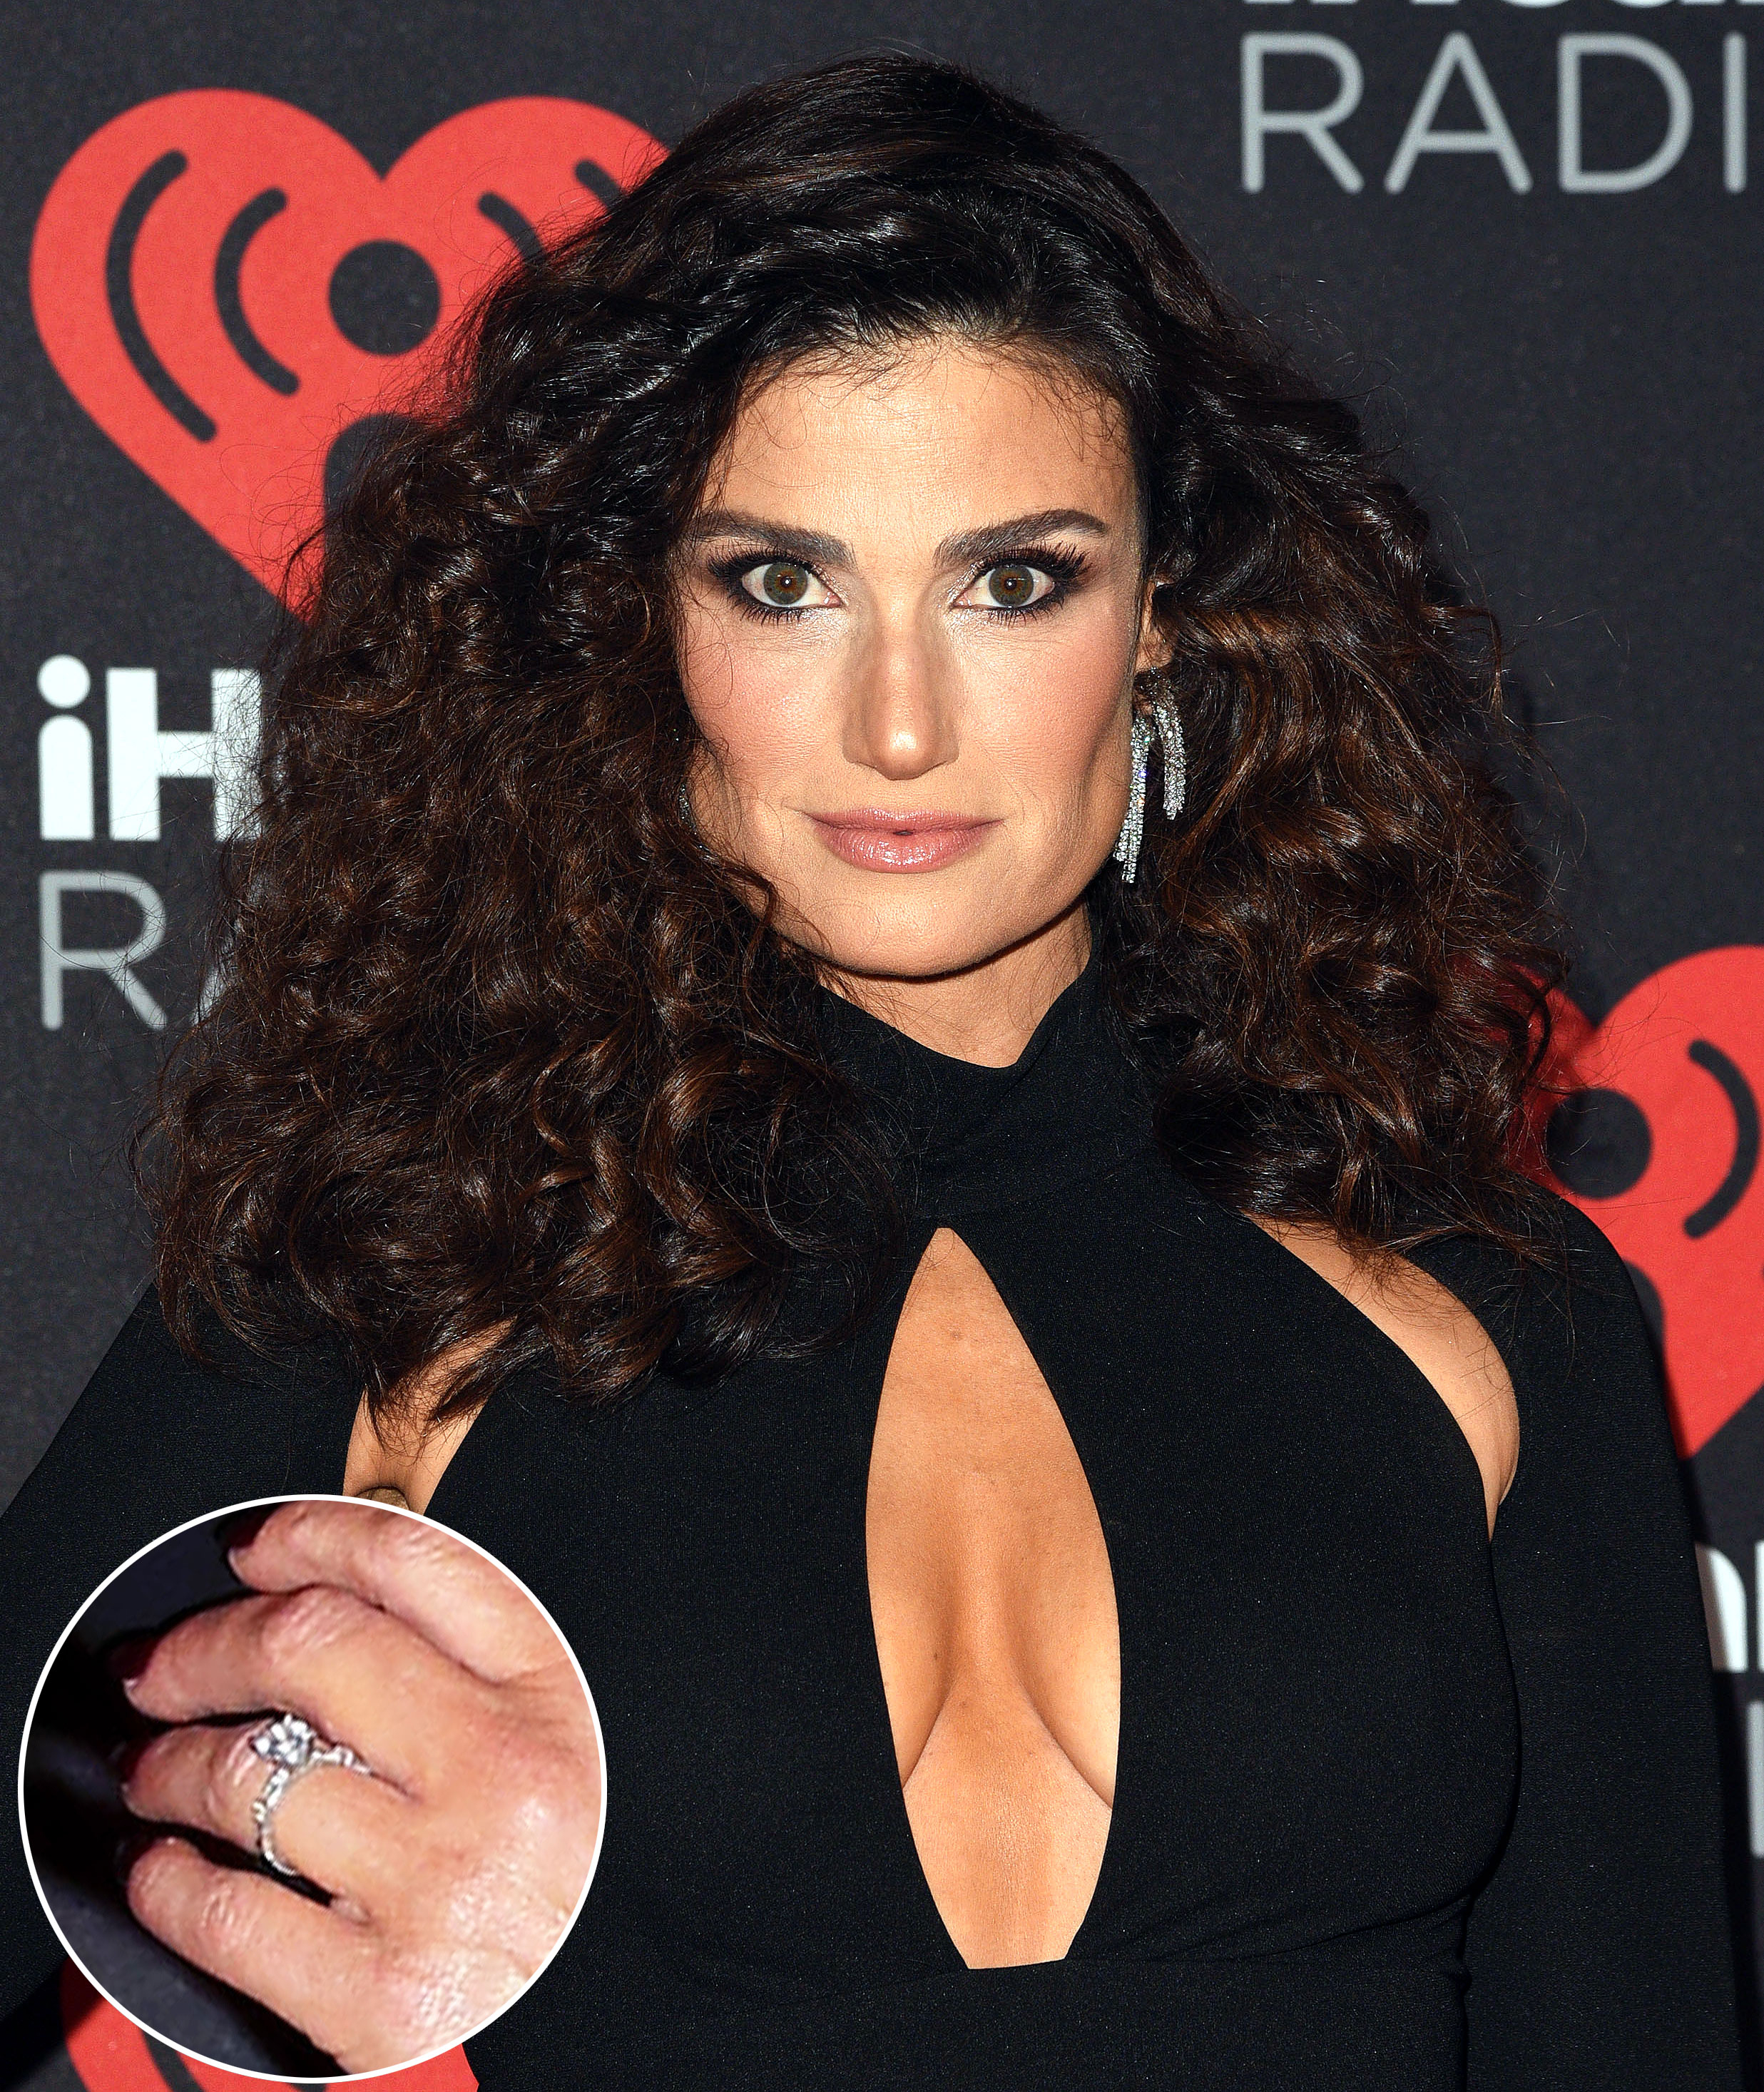 Idina Menzel's Diamond Engagement Ring Is A Stunner: Photos